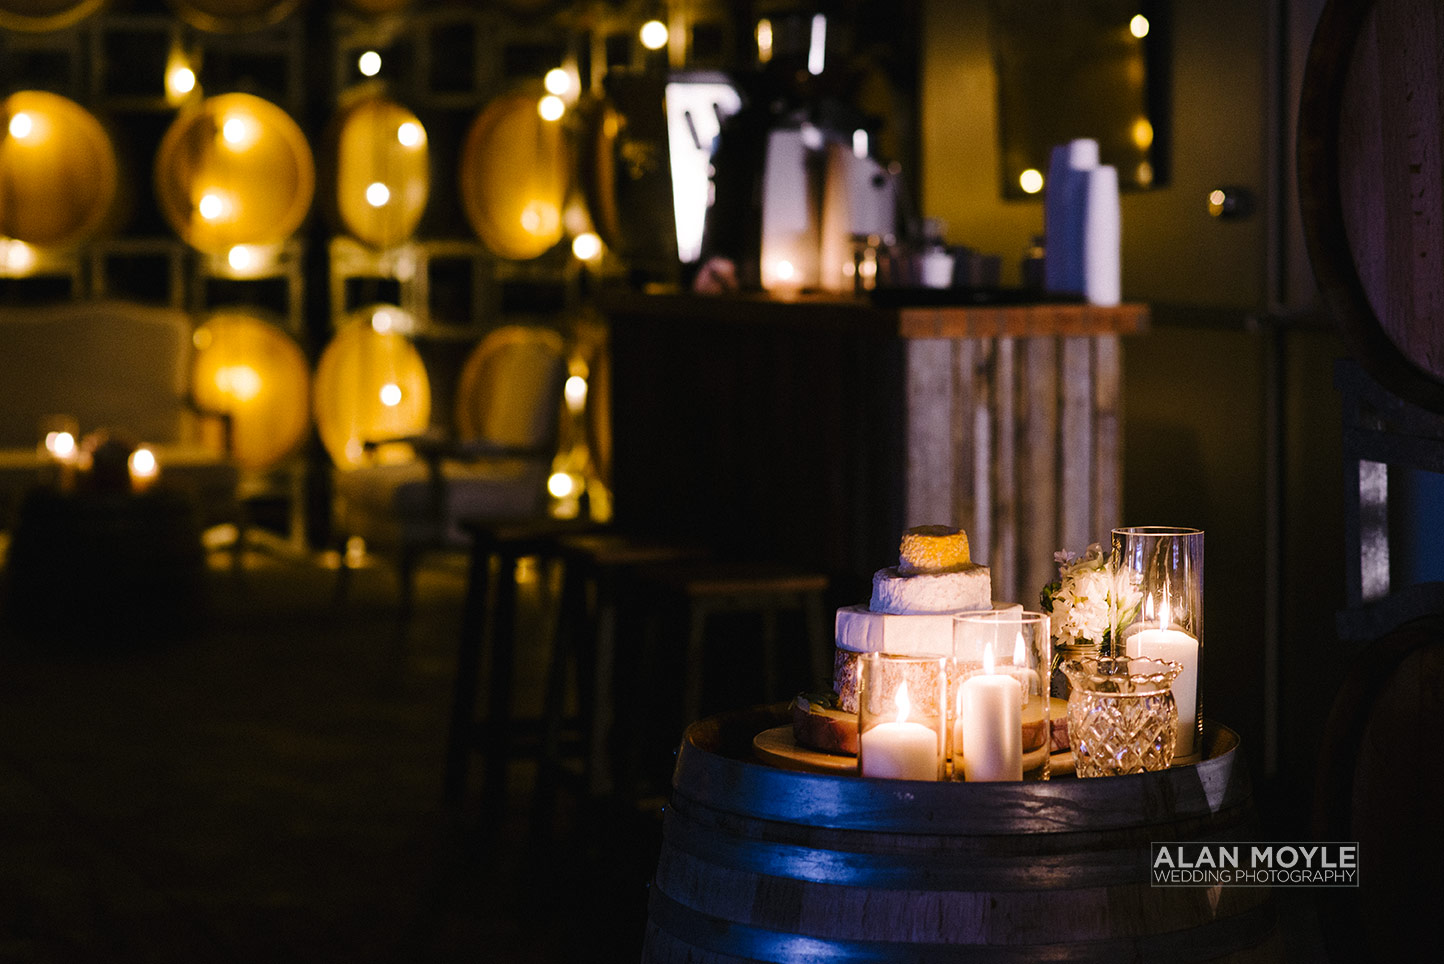 1405austin-282weddings_of_desire_melbourne_styling_event_geelong_alan_moyle_vineyard_winery_caligraphy_laura_sprout_hire_bayside.jpg